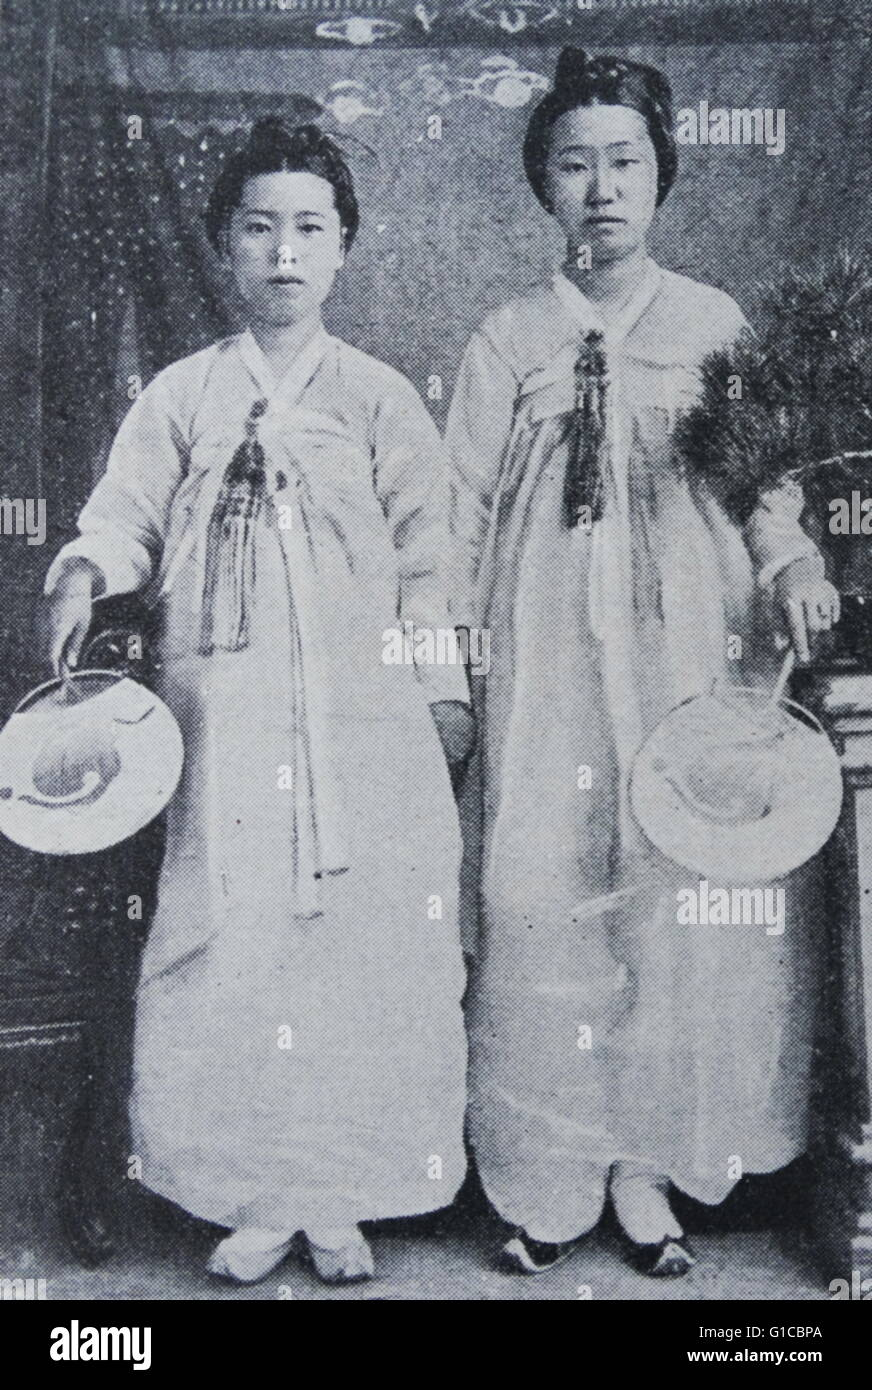 Photographic portrait of Korean ladies attached to the court. Dated 1890 - Stock Image